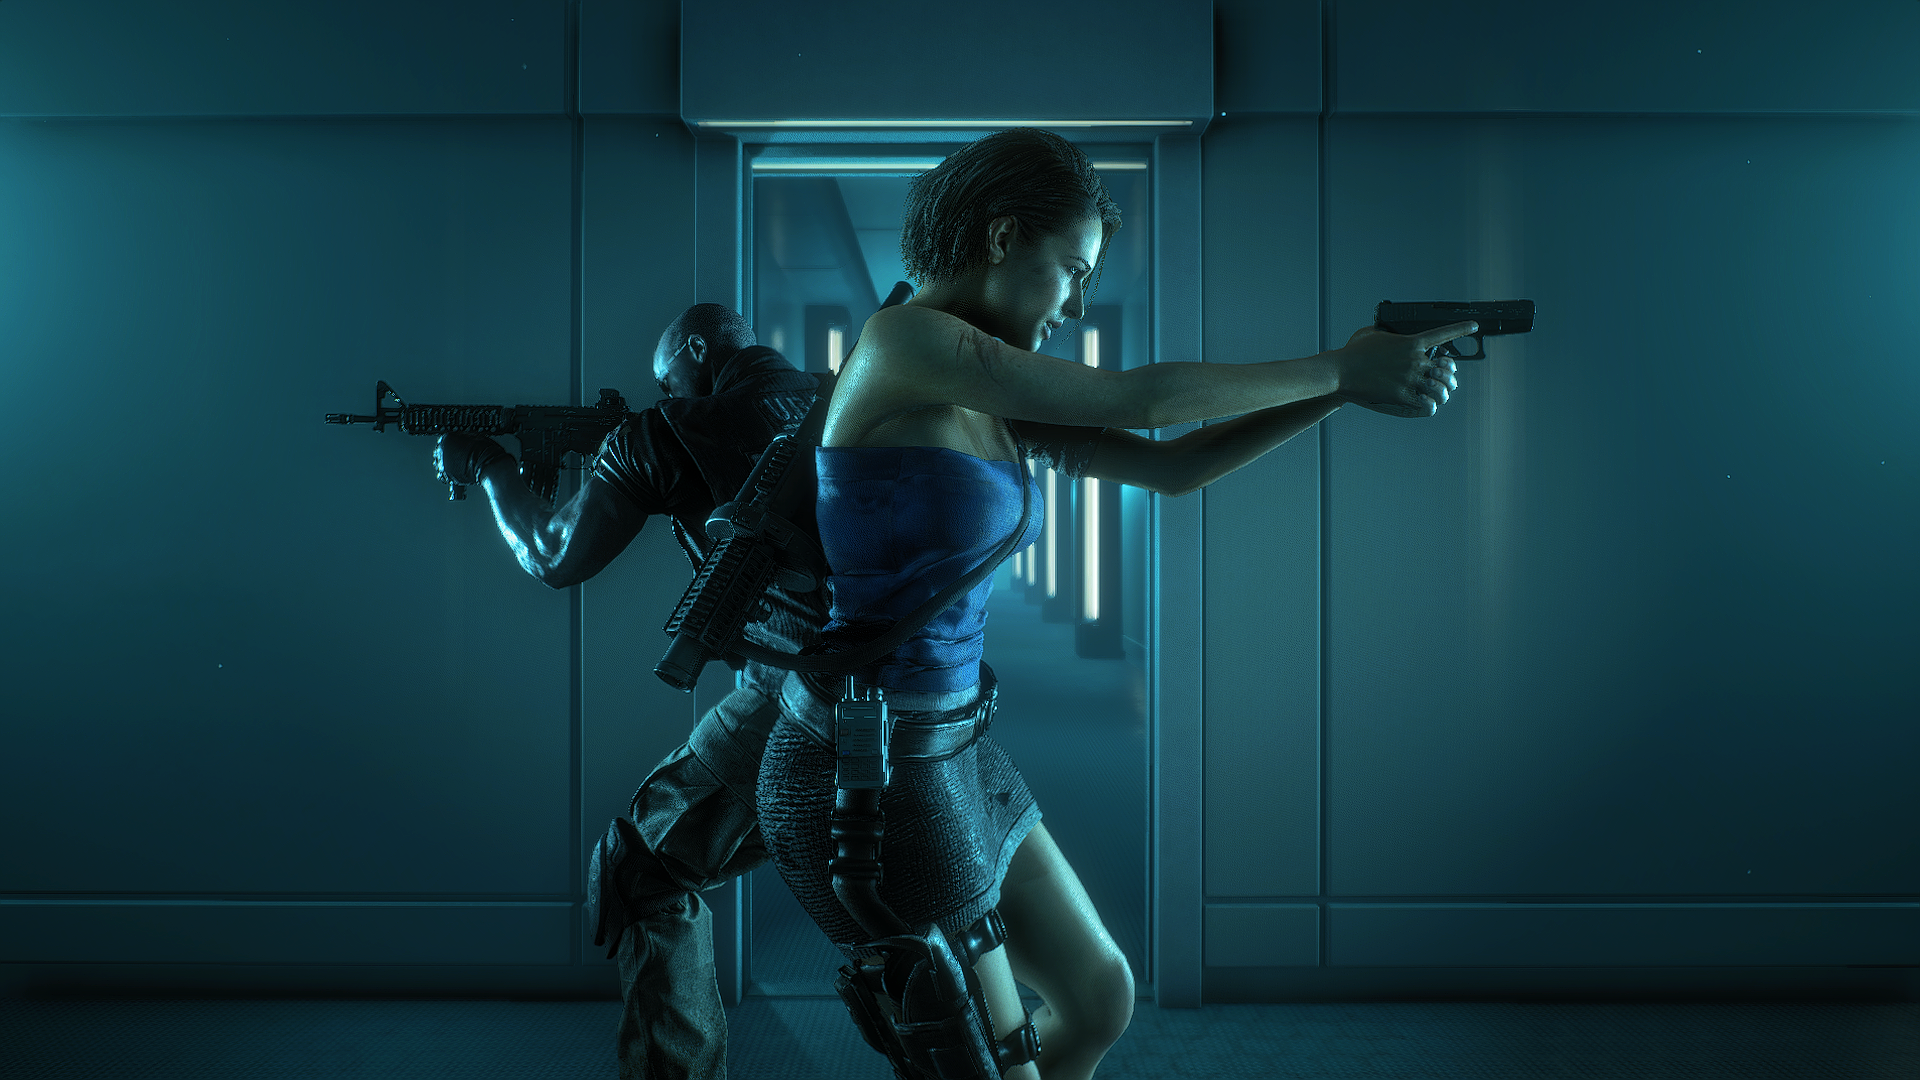 http://img.playground.ru/images/6/1/Resident_Evil_3_Remake_Screenshot_2020.04.07_-_01.09.40.45.png